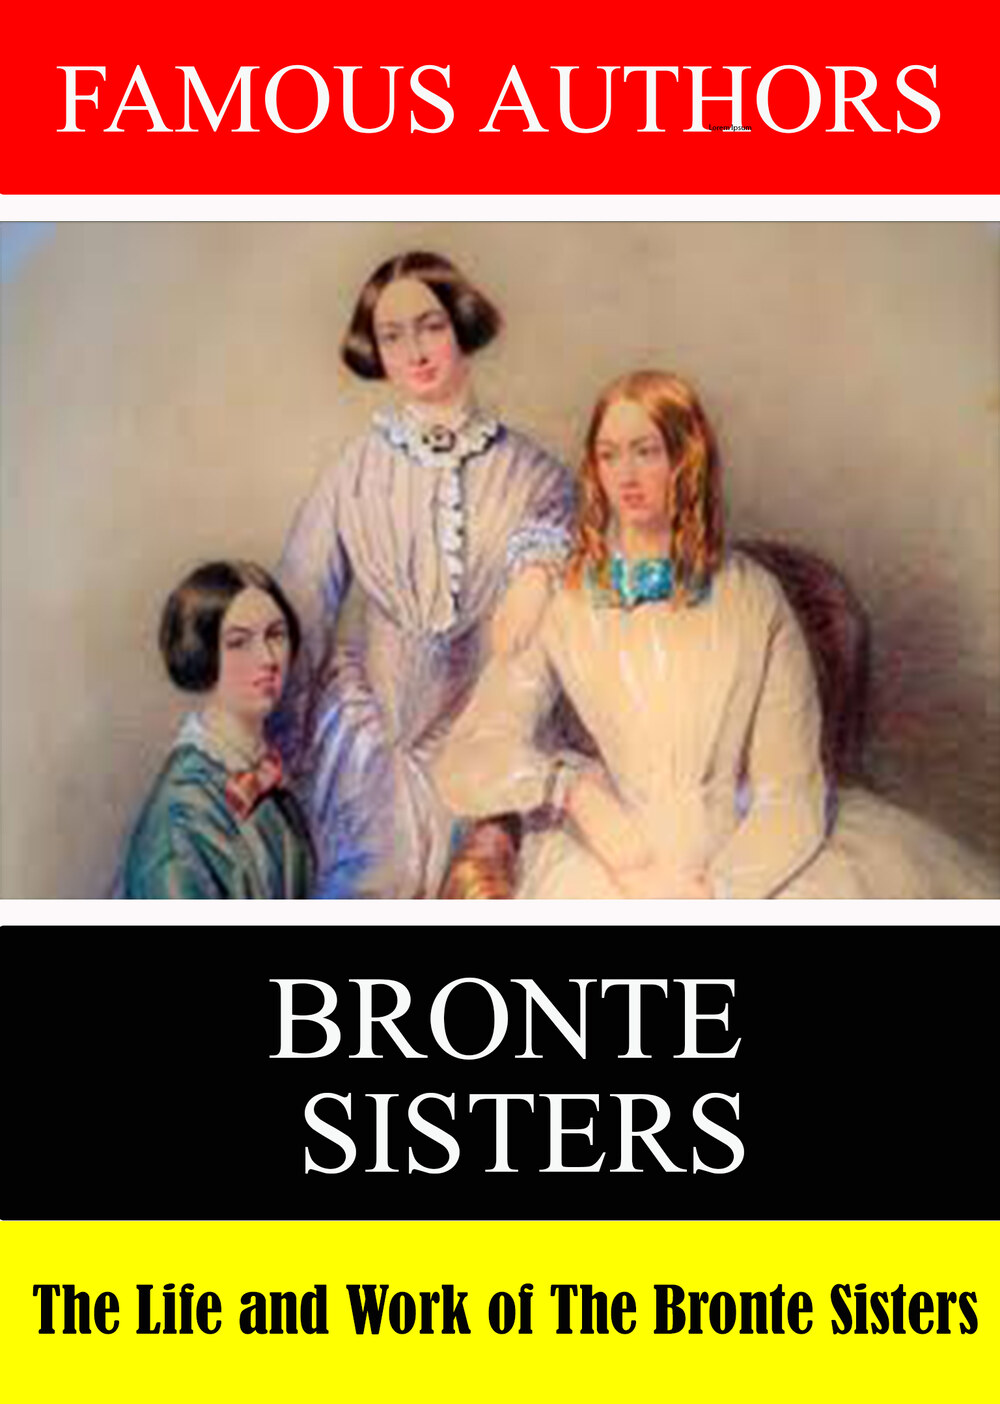 L7873 - Famous Authors: The Life and Work The Bronte Sisters